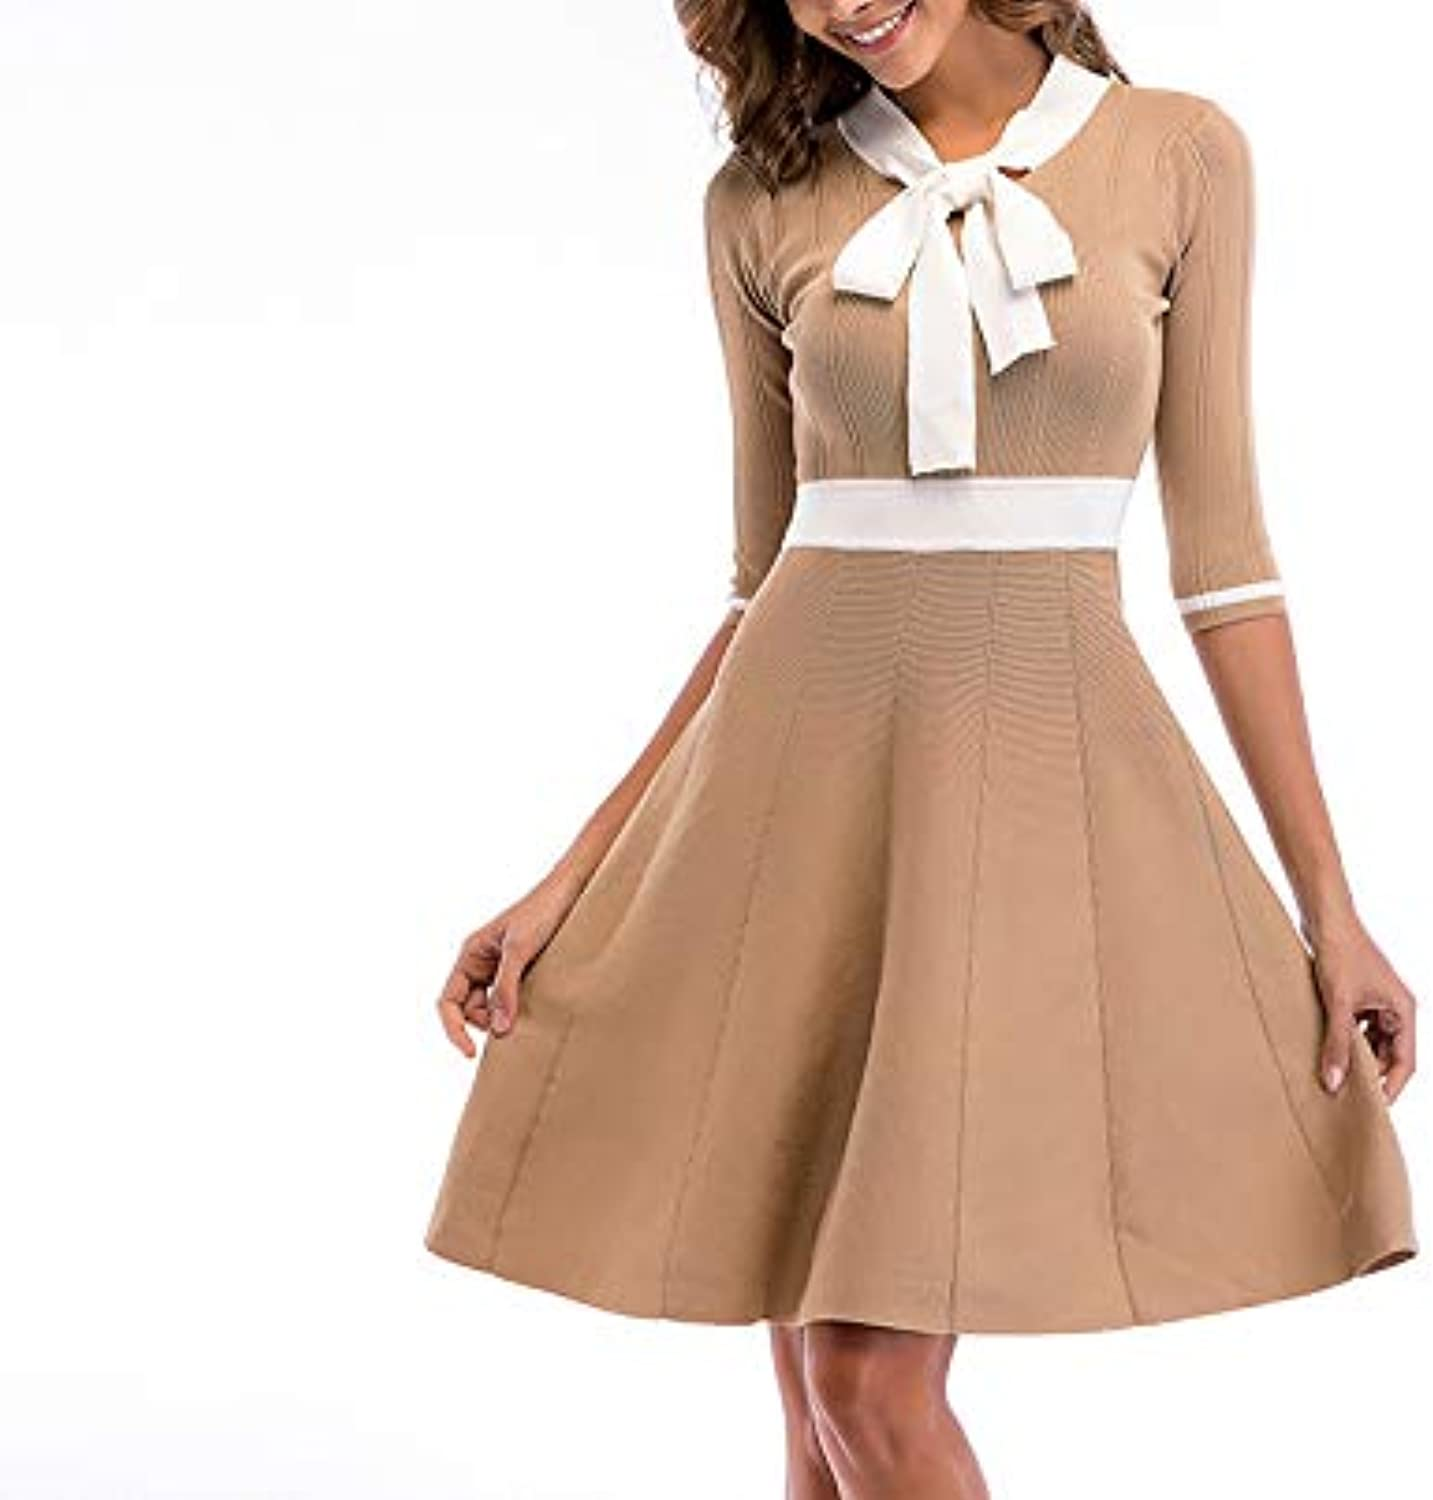 Summer Dress Ladies Fashion Bow Skirt in The Sleeves Large Swing Knit Temperament Skirt Prom Party Dress